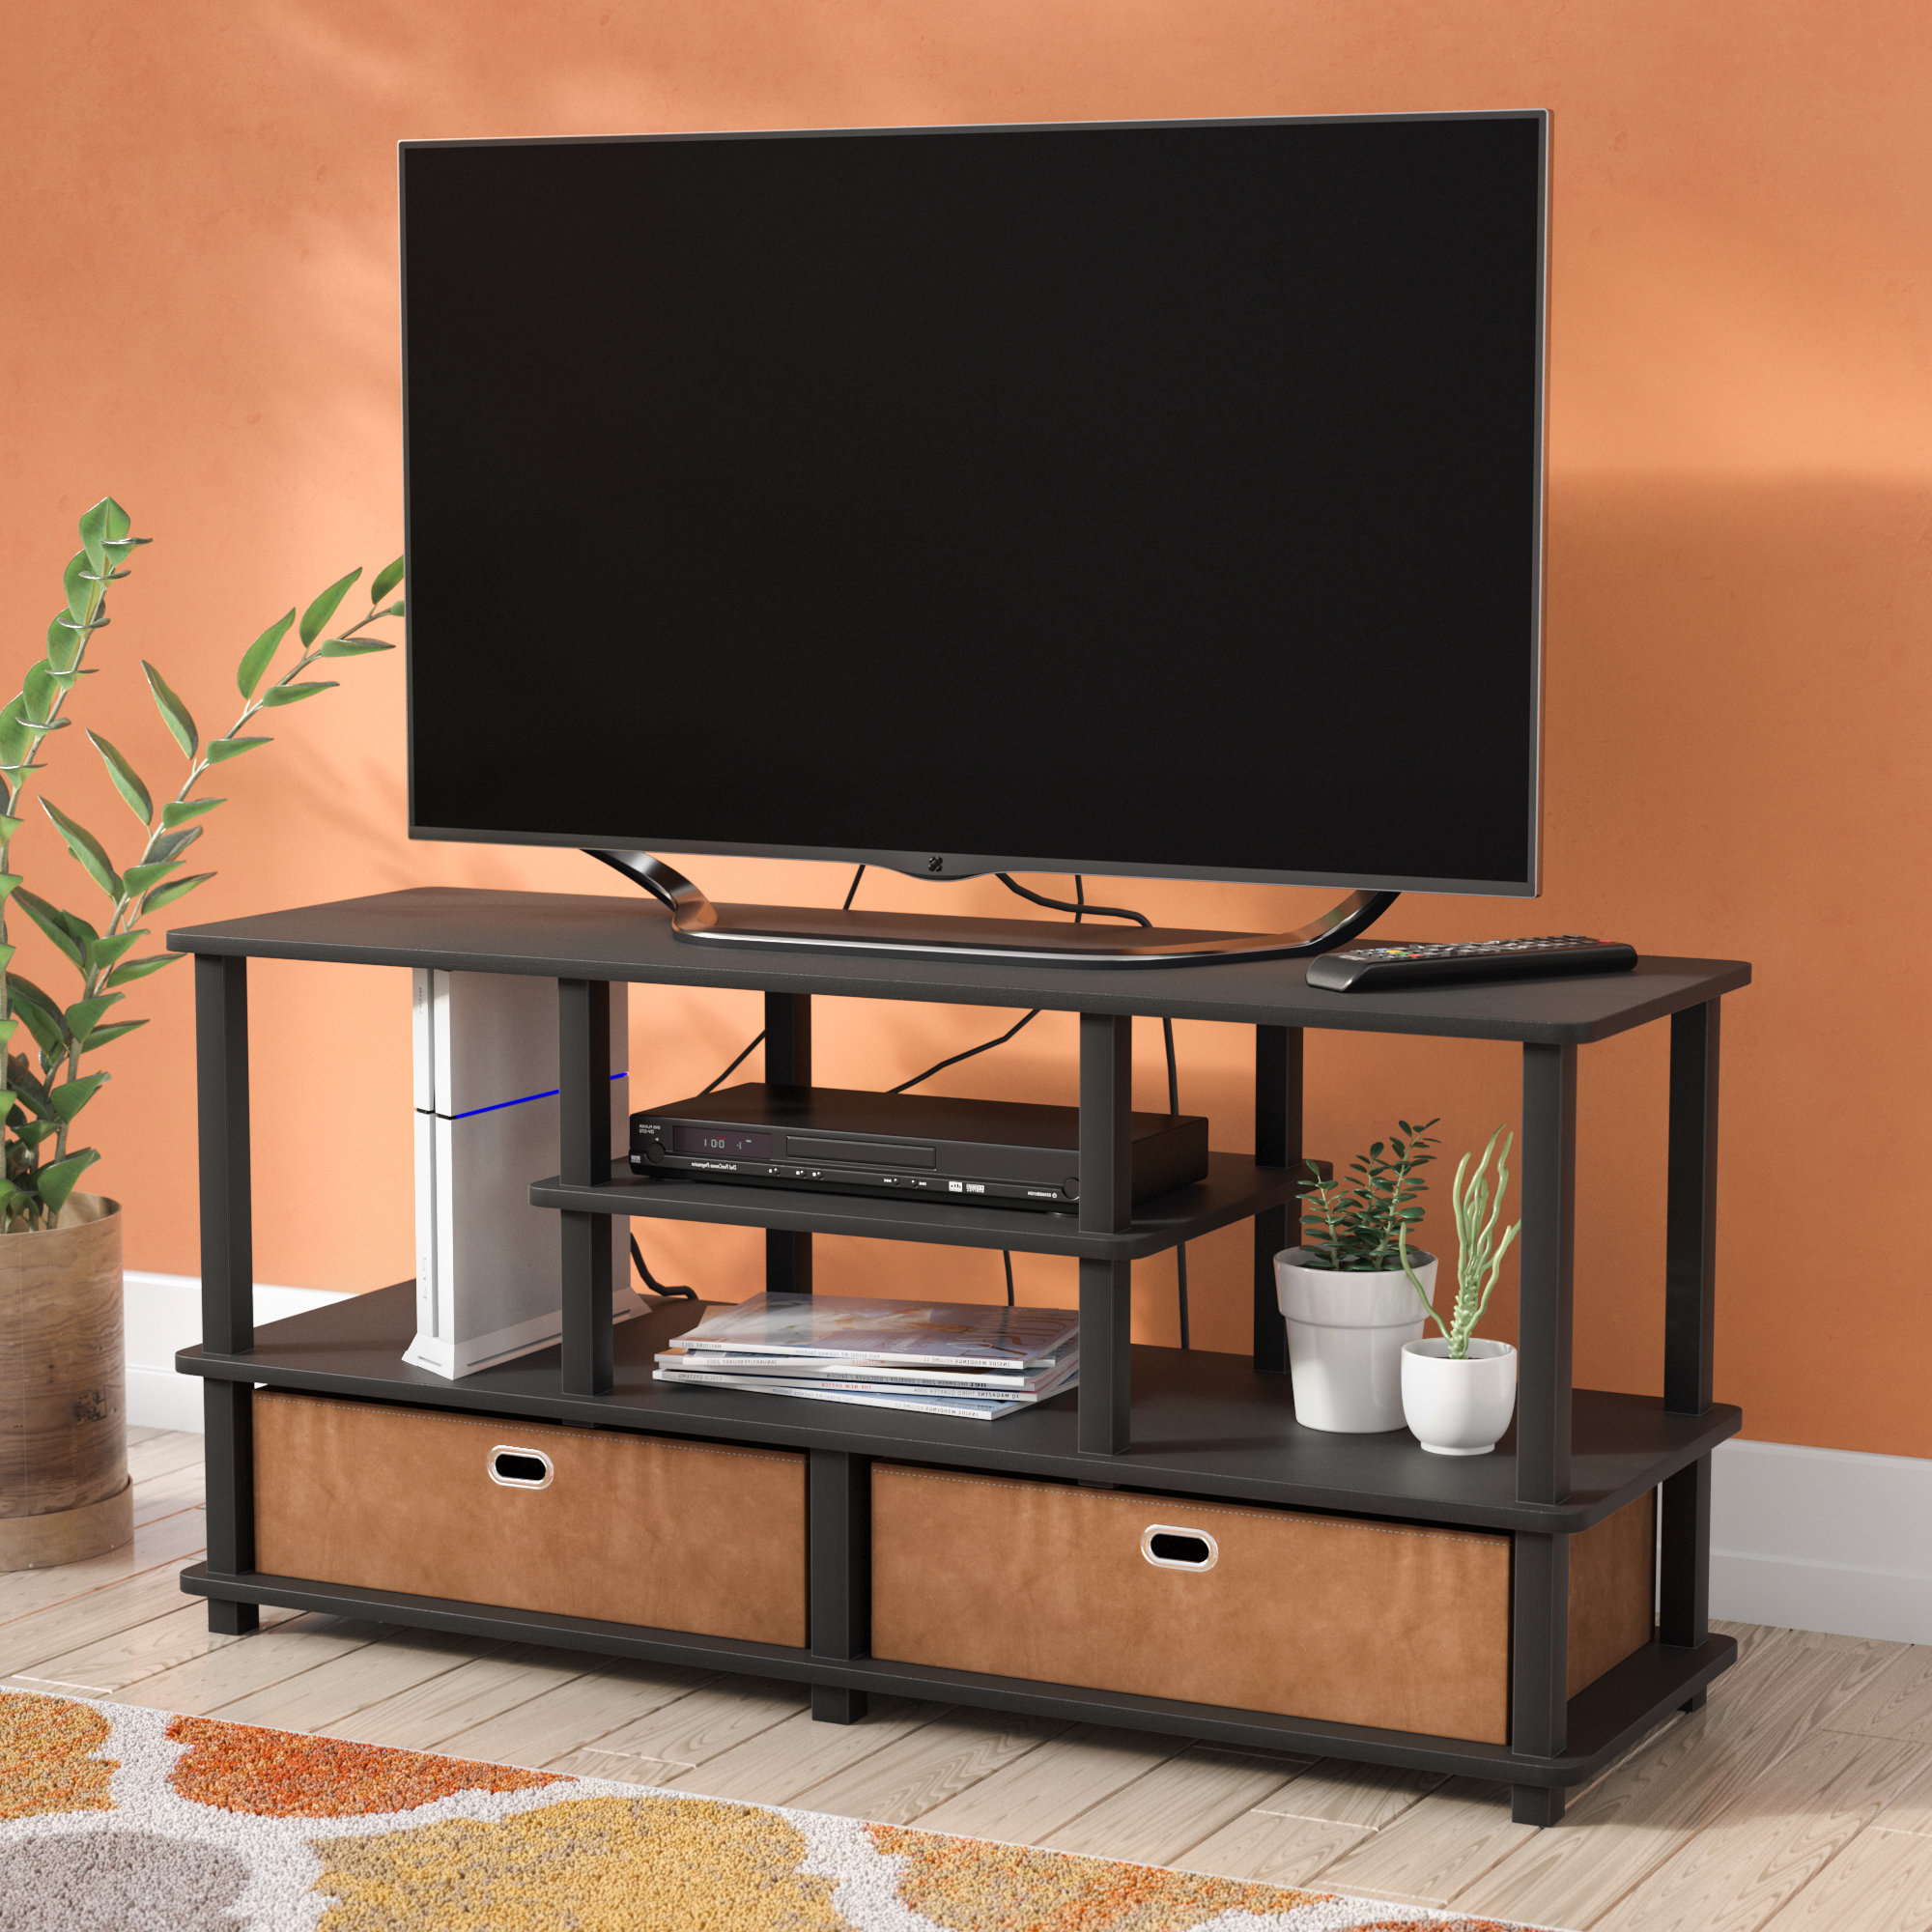 40 49 Inches Tv Stand Tv Stands & Entertainment Centers You'll Love Pertaining To Most Recently Released Tv Stands For Tube Tvs (Gallery 16 of 20)